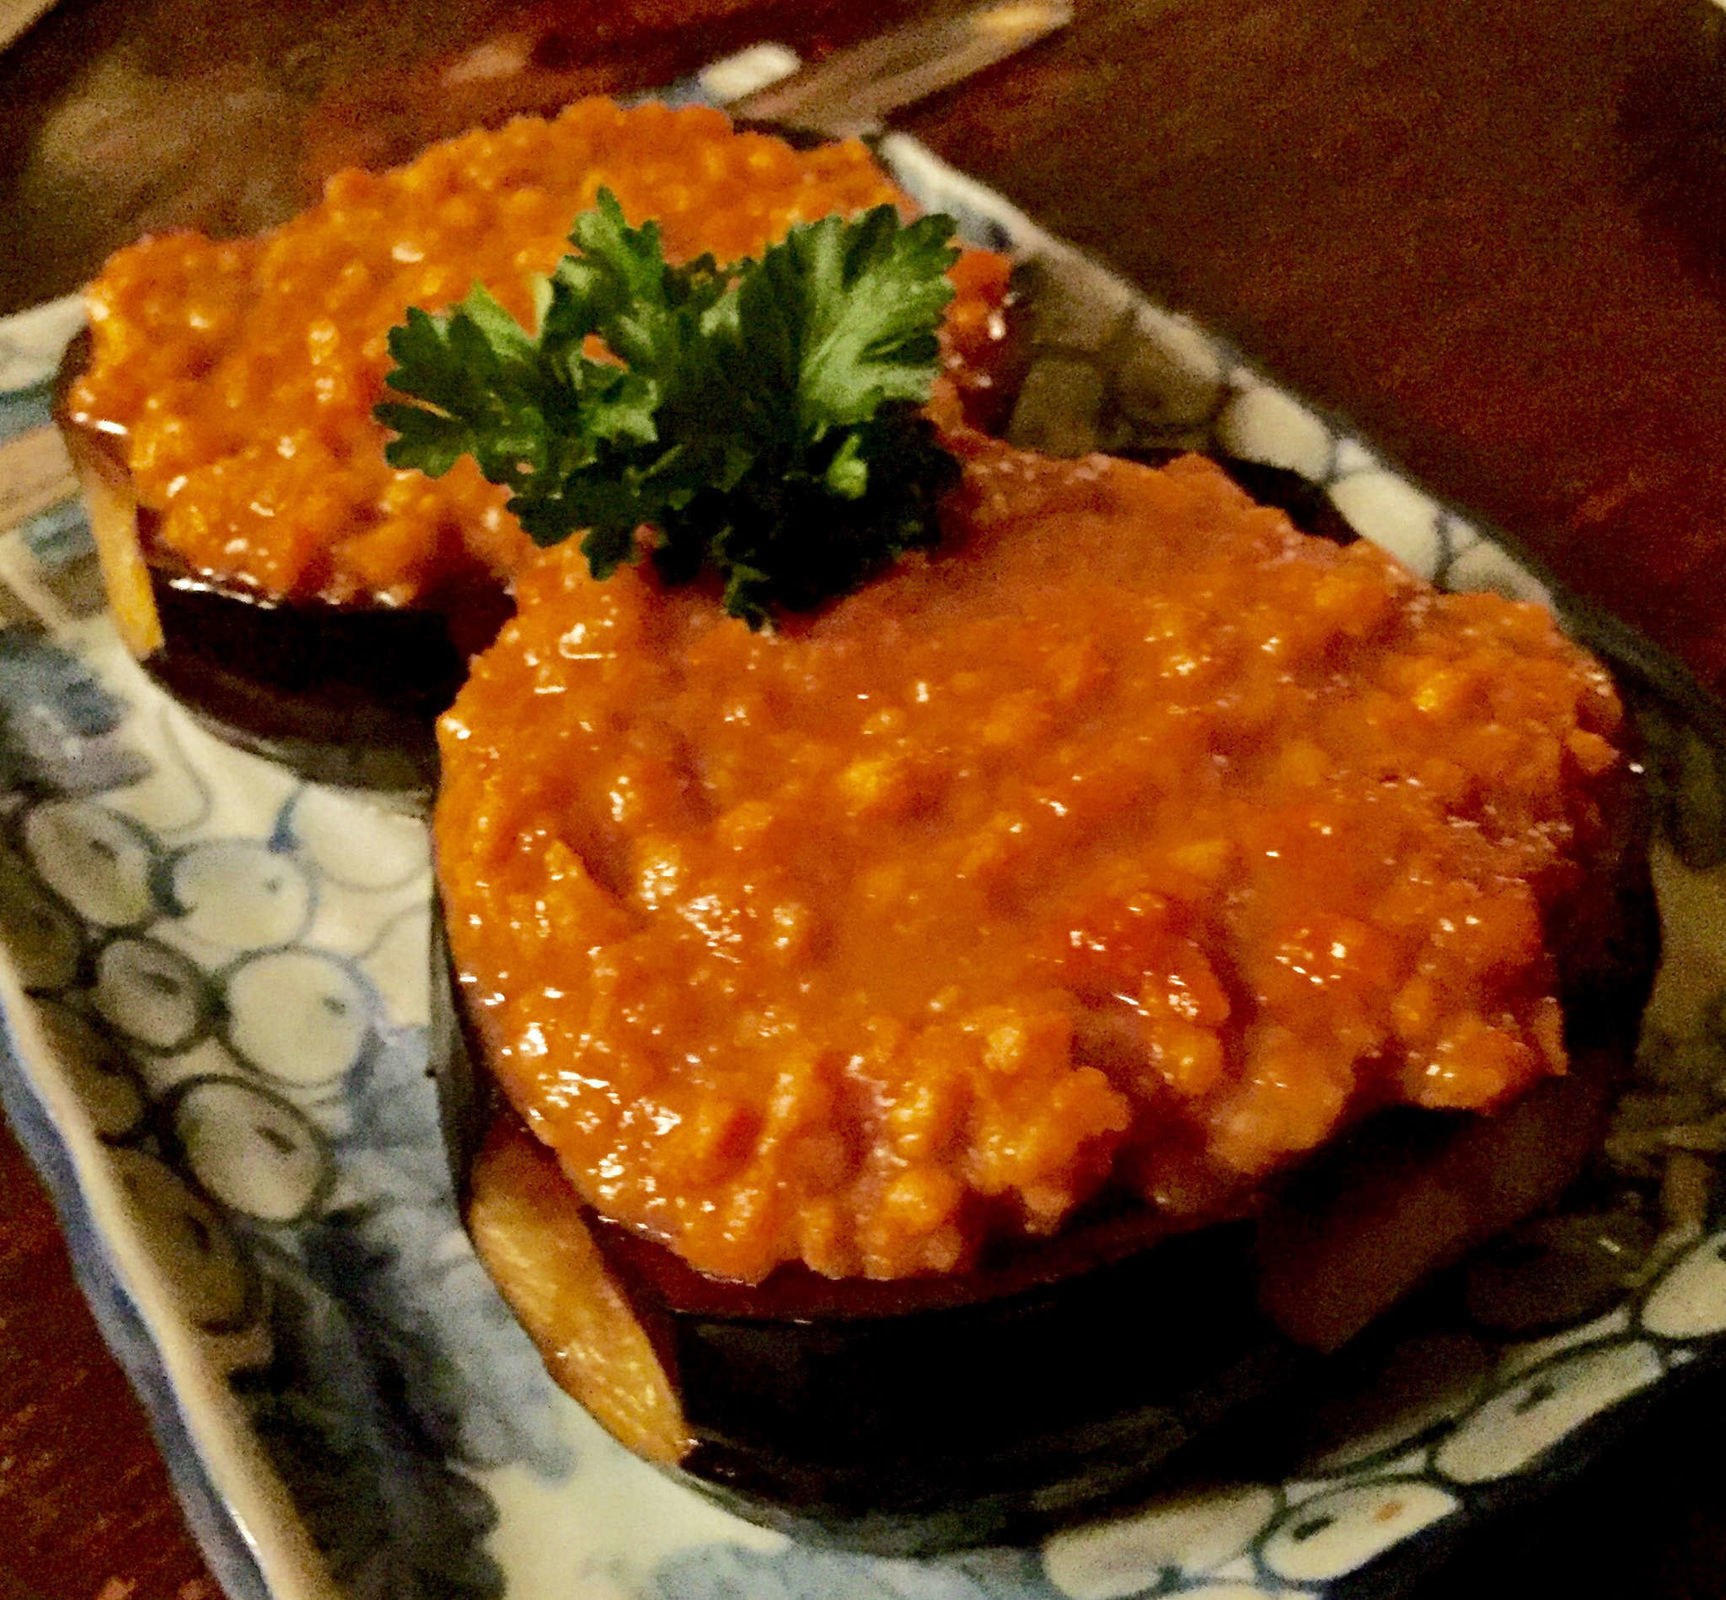 The nasu shigiyaki (eggplant with chicken and fermented soy gravy) at Sagami in Collingswood. (CRAIG LABAN / Staff)